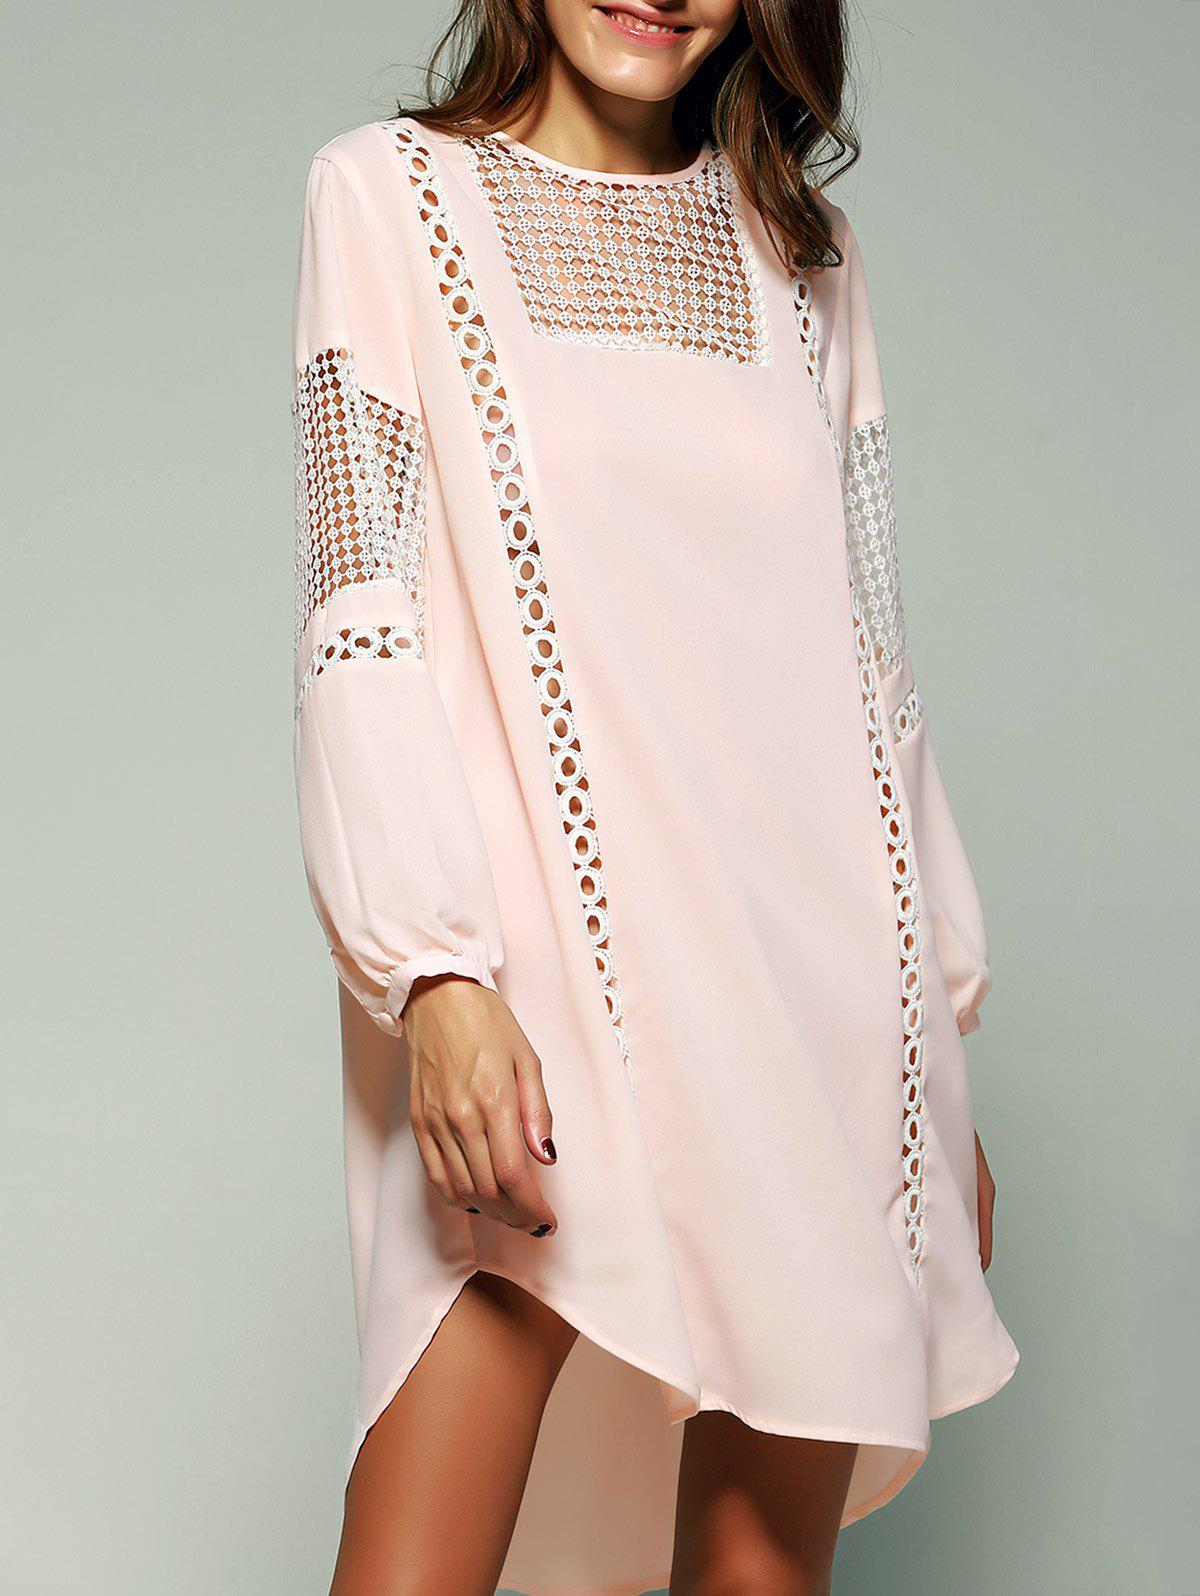 Bohemian Crochet Trim Lantern Sleeve Asymmetric Dress - SHALLOW PINK 2XL